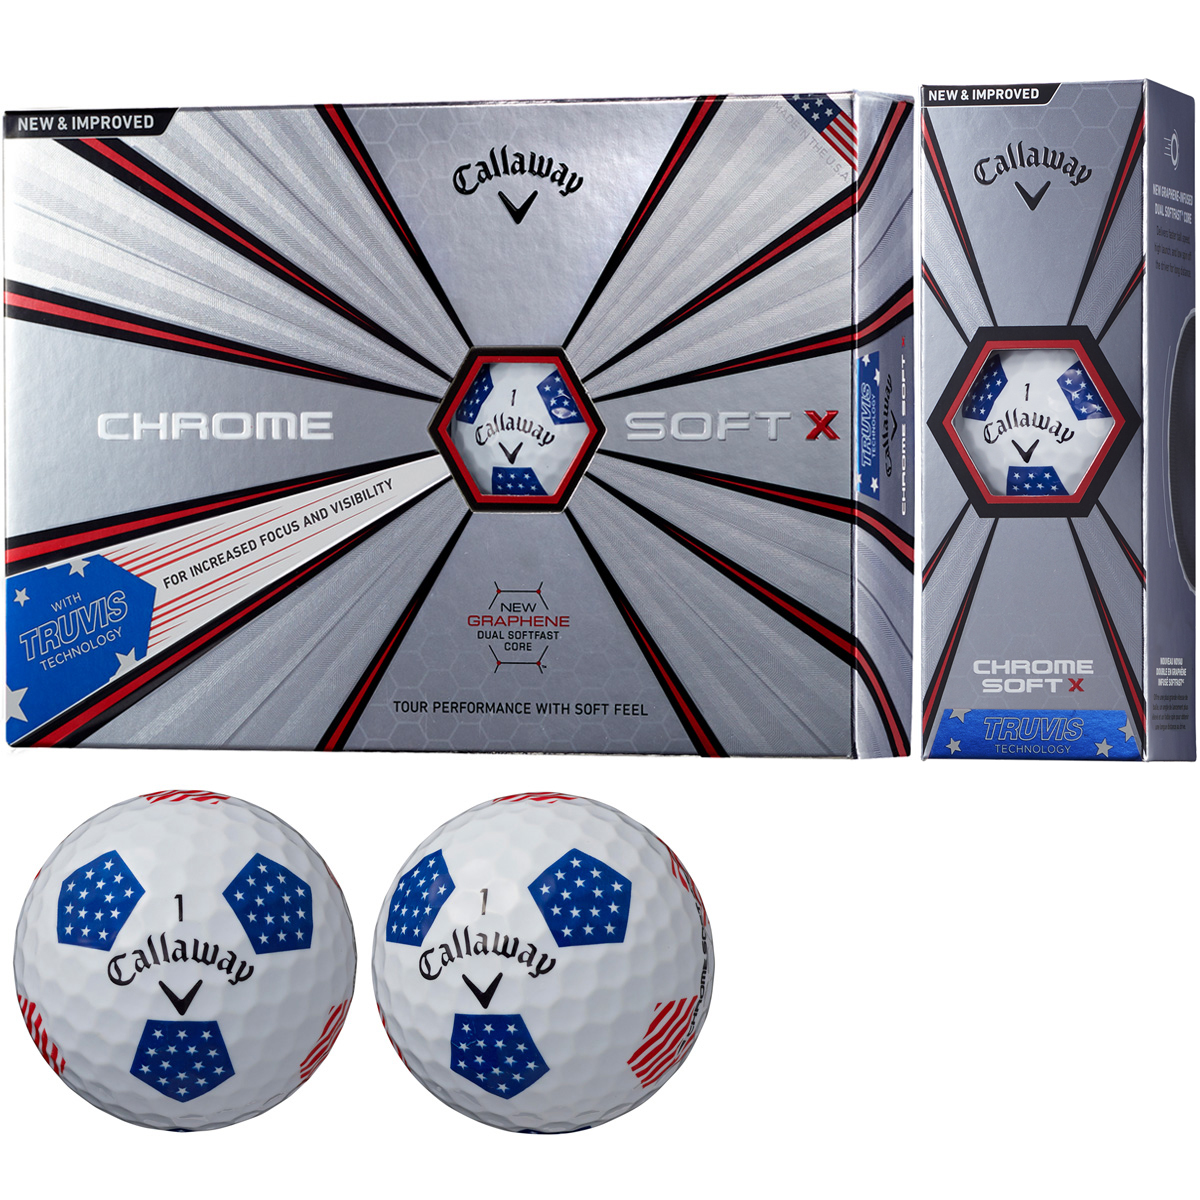 CHROME SOFT X 18 TRUVIS ボール